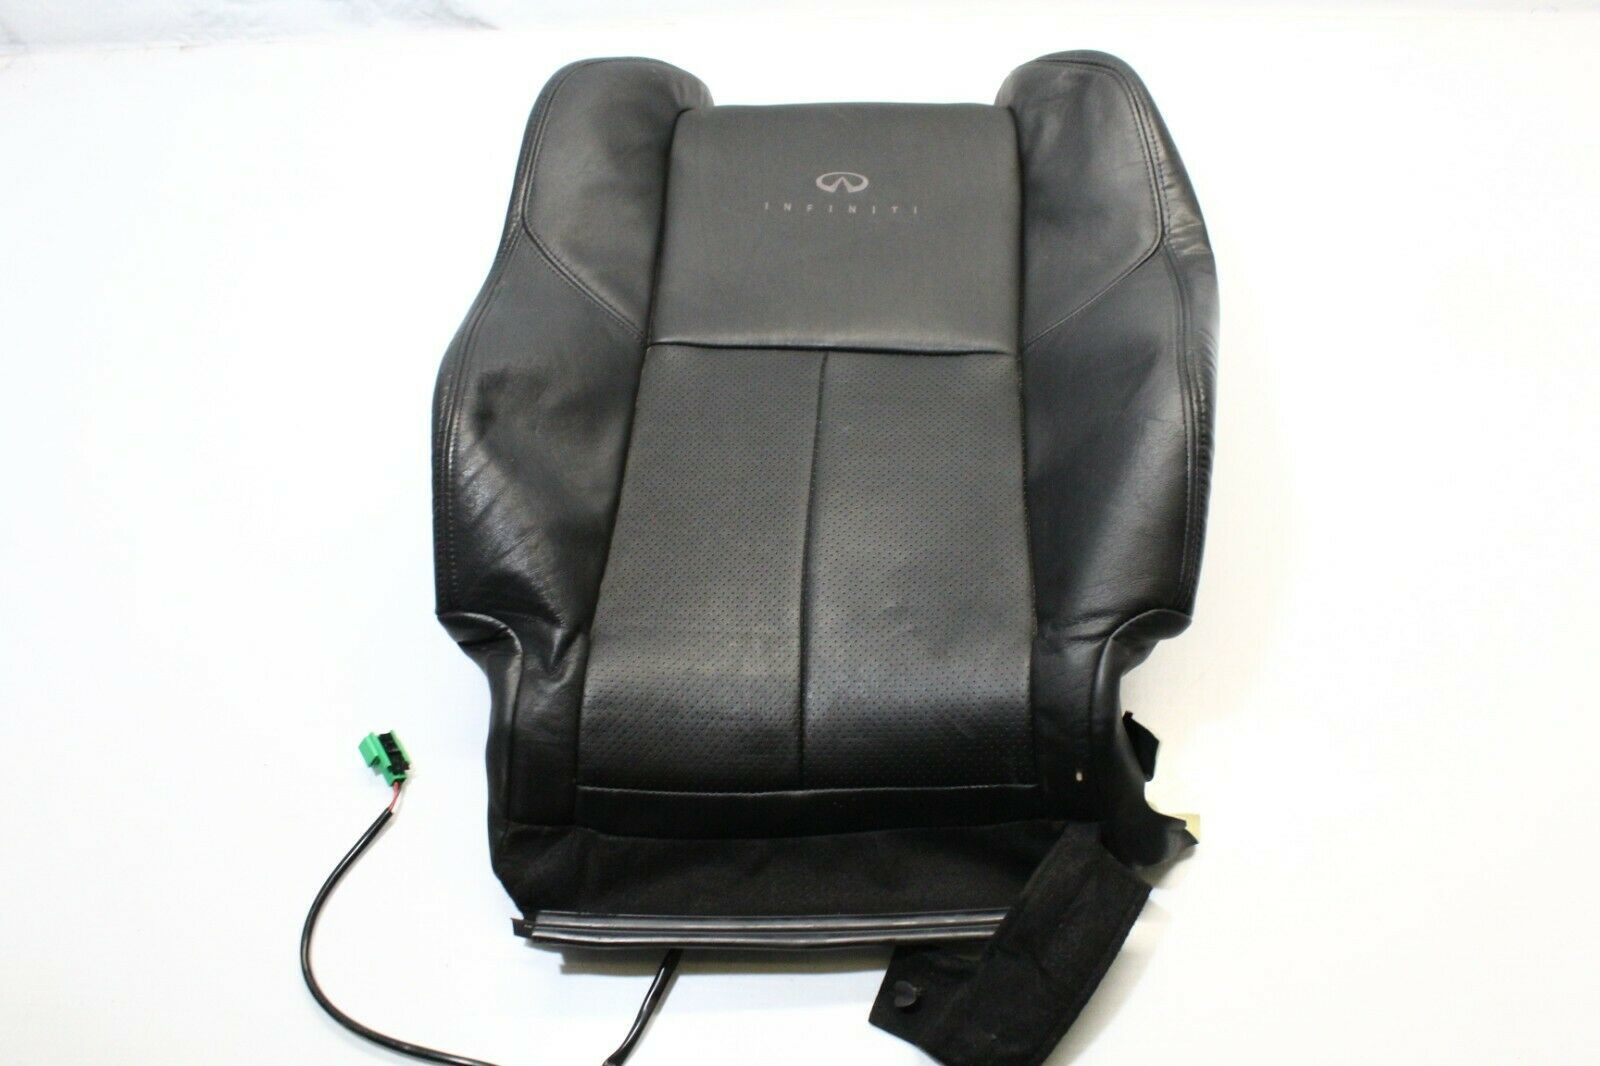 2003-2007 INFINITI G35 COUPE FRONT RIGHT PASSENGER SIDE UPPER SEAT COVER P1666 - $117.60